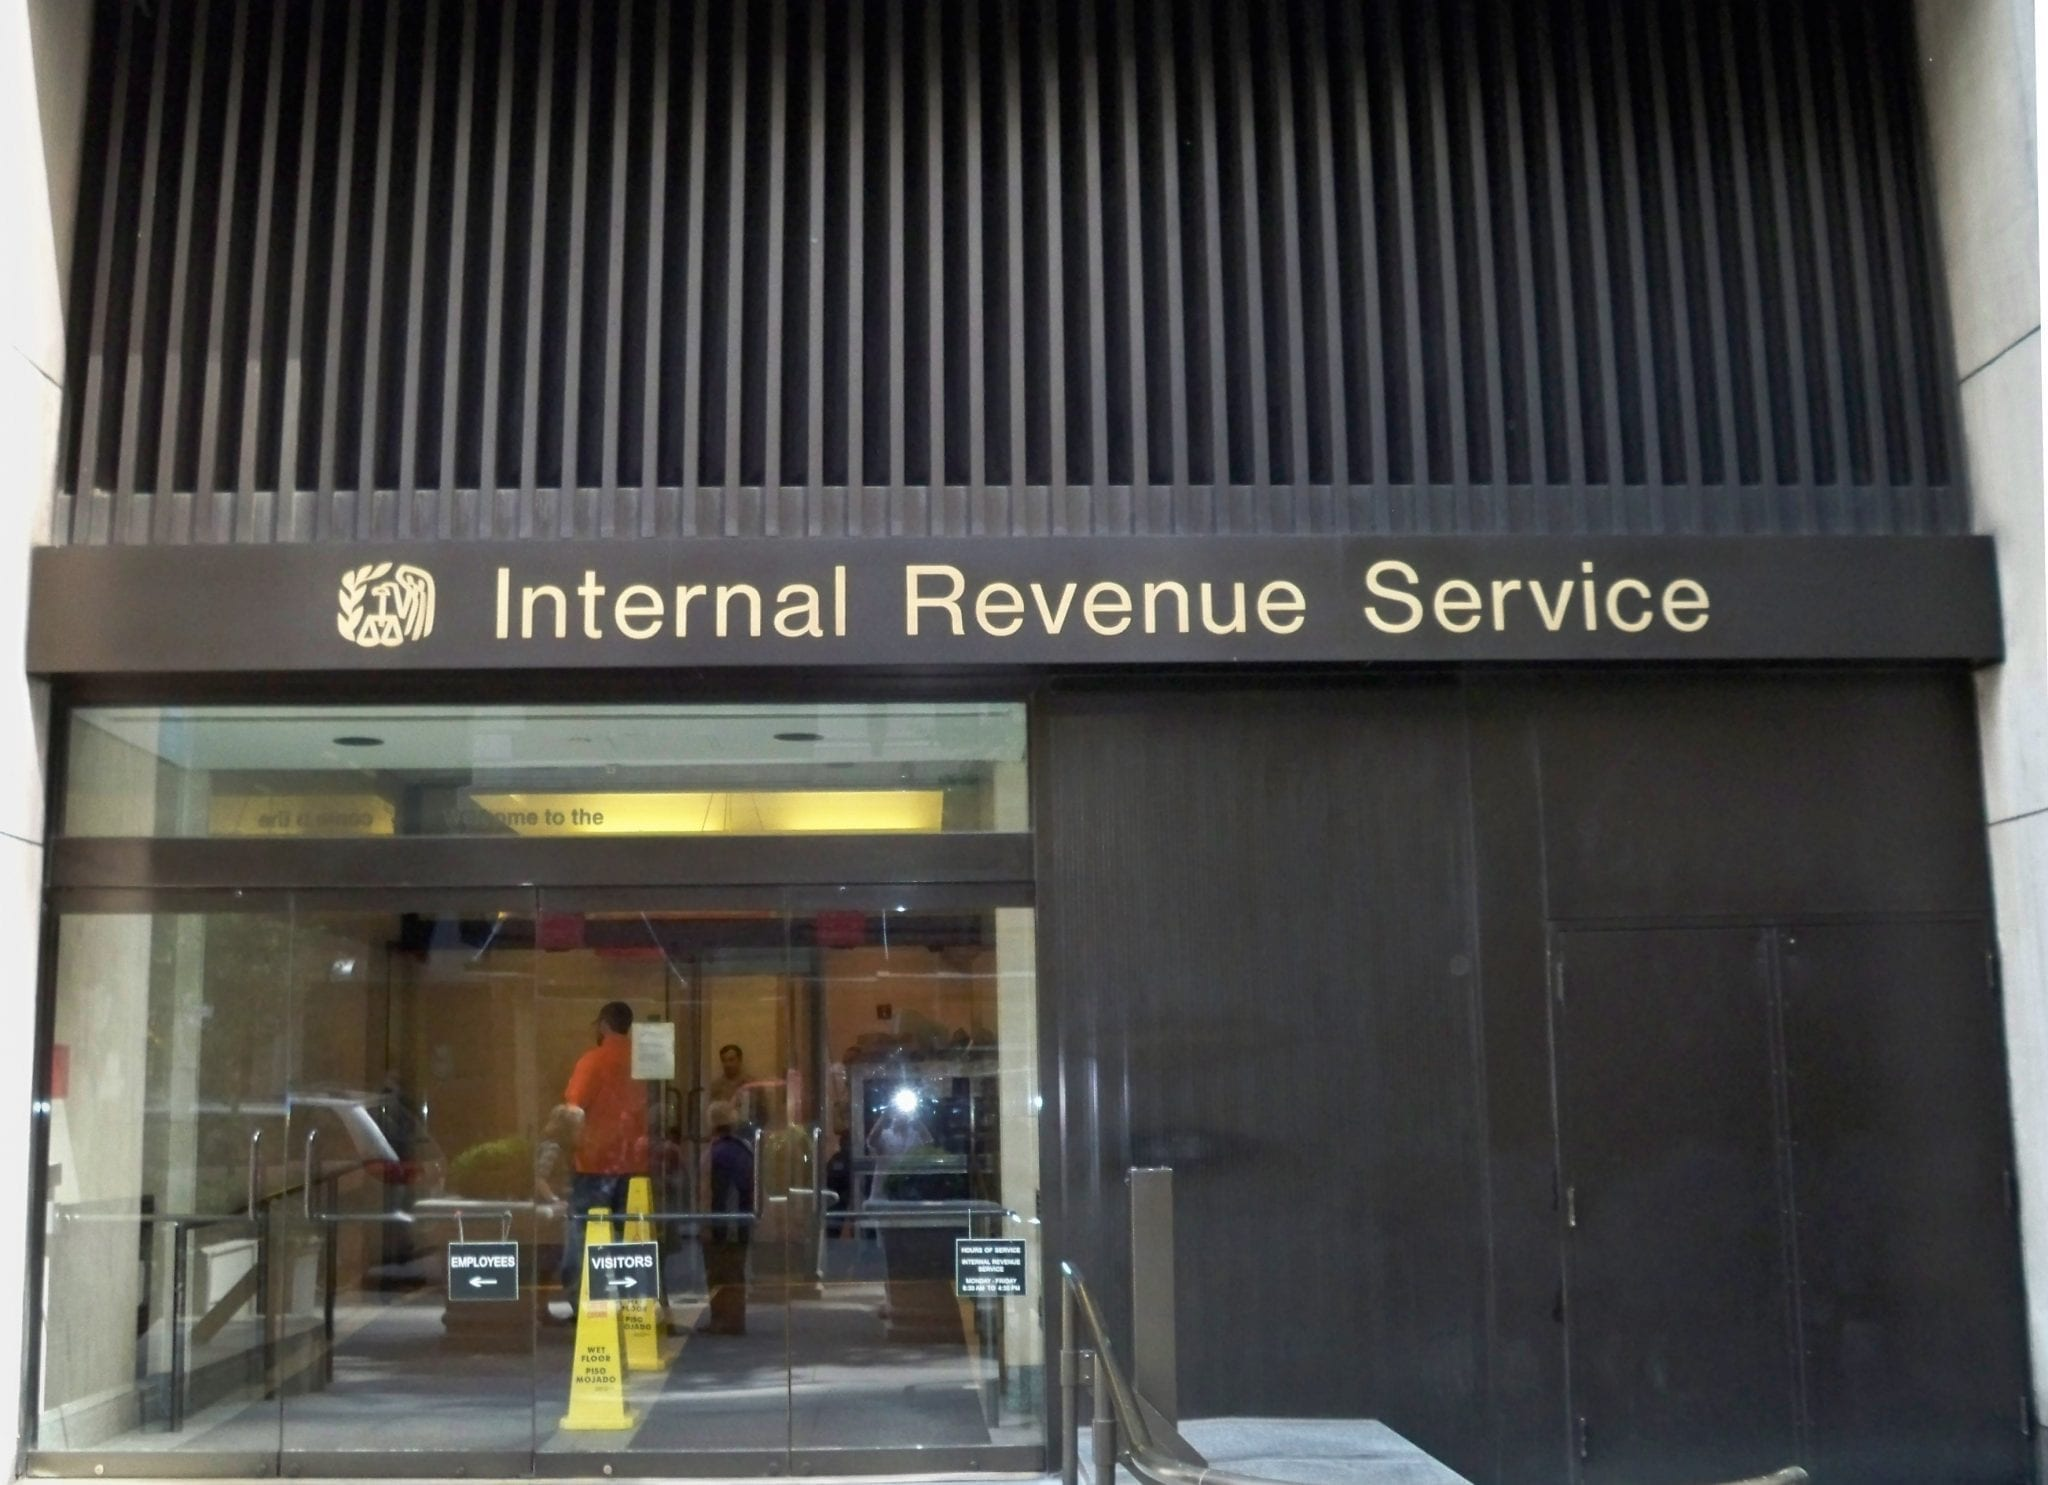 Exterior of the Internal Revenue Service office in midtown New York; Matthew G. Bisanz, CC BY-SA 3.0, via Wikimedia Commons, no changes.